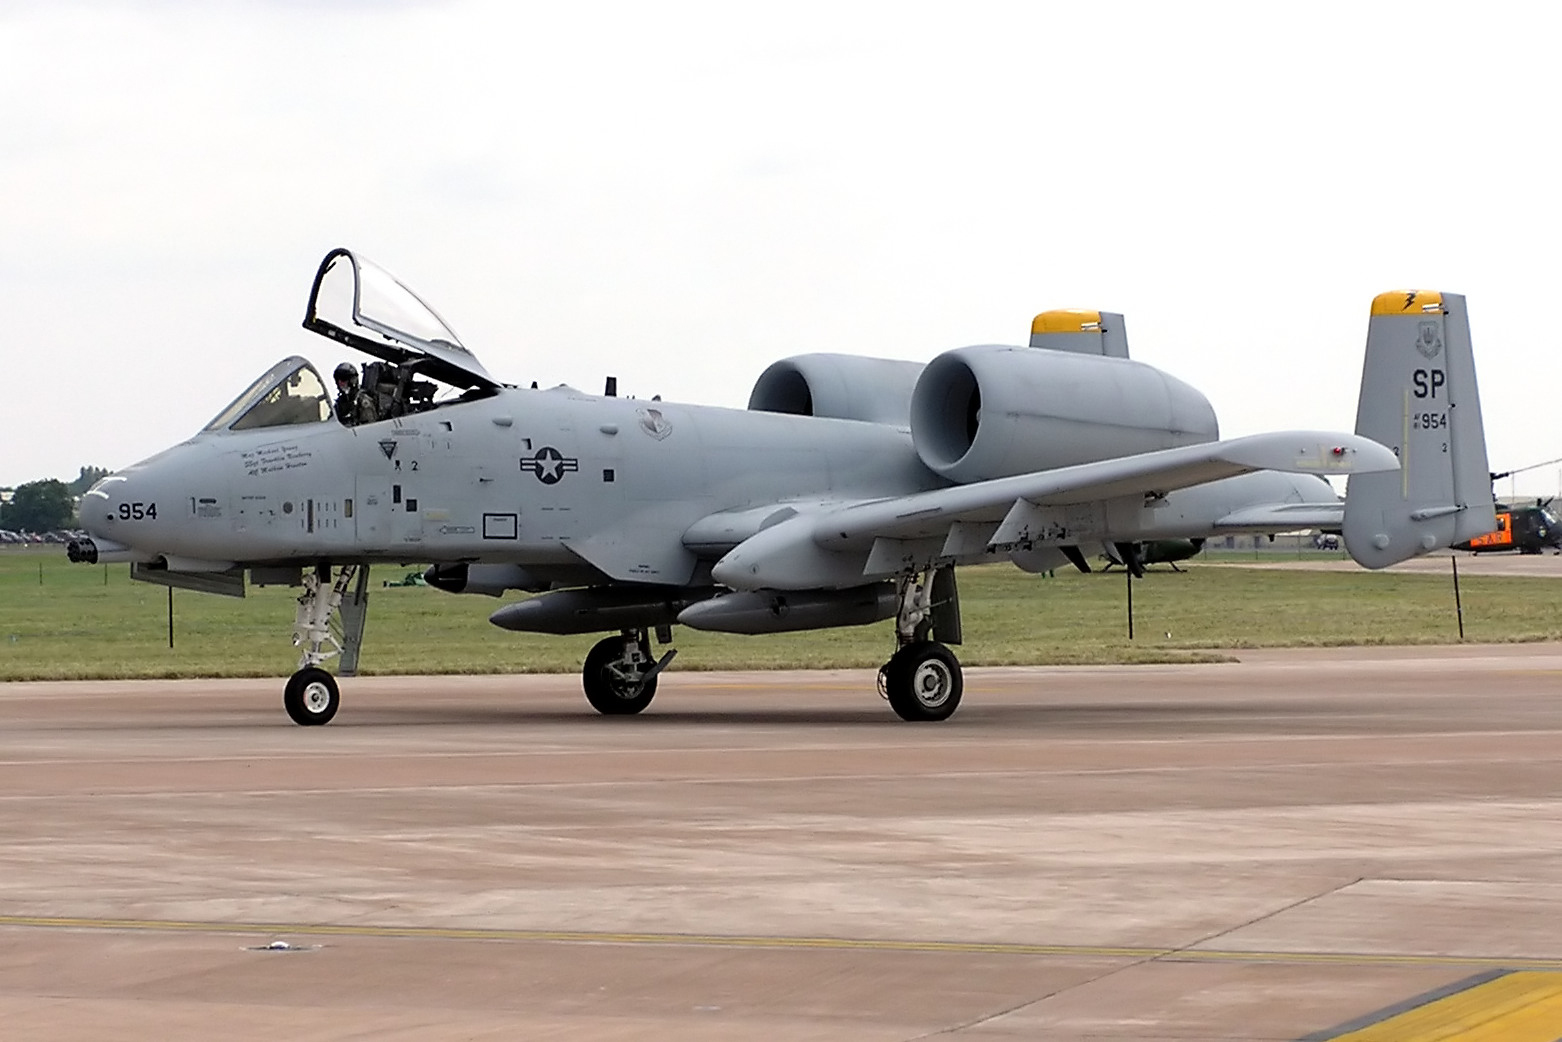 Description Thunderbolt.a10.fairford.arp.jpg